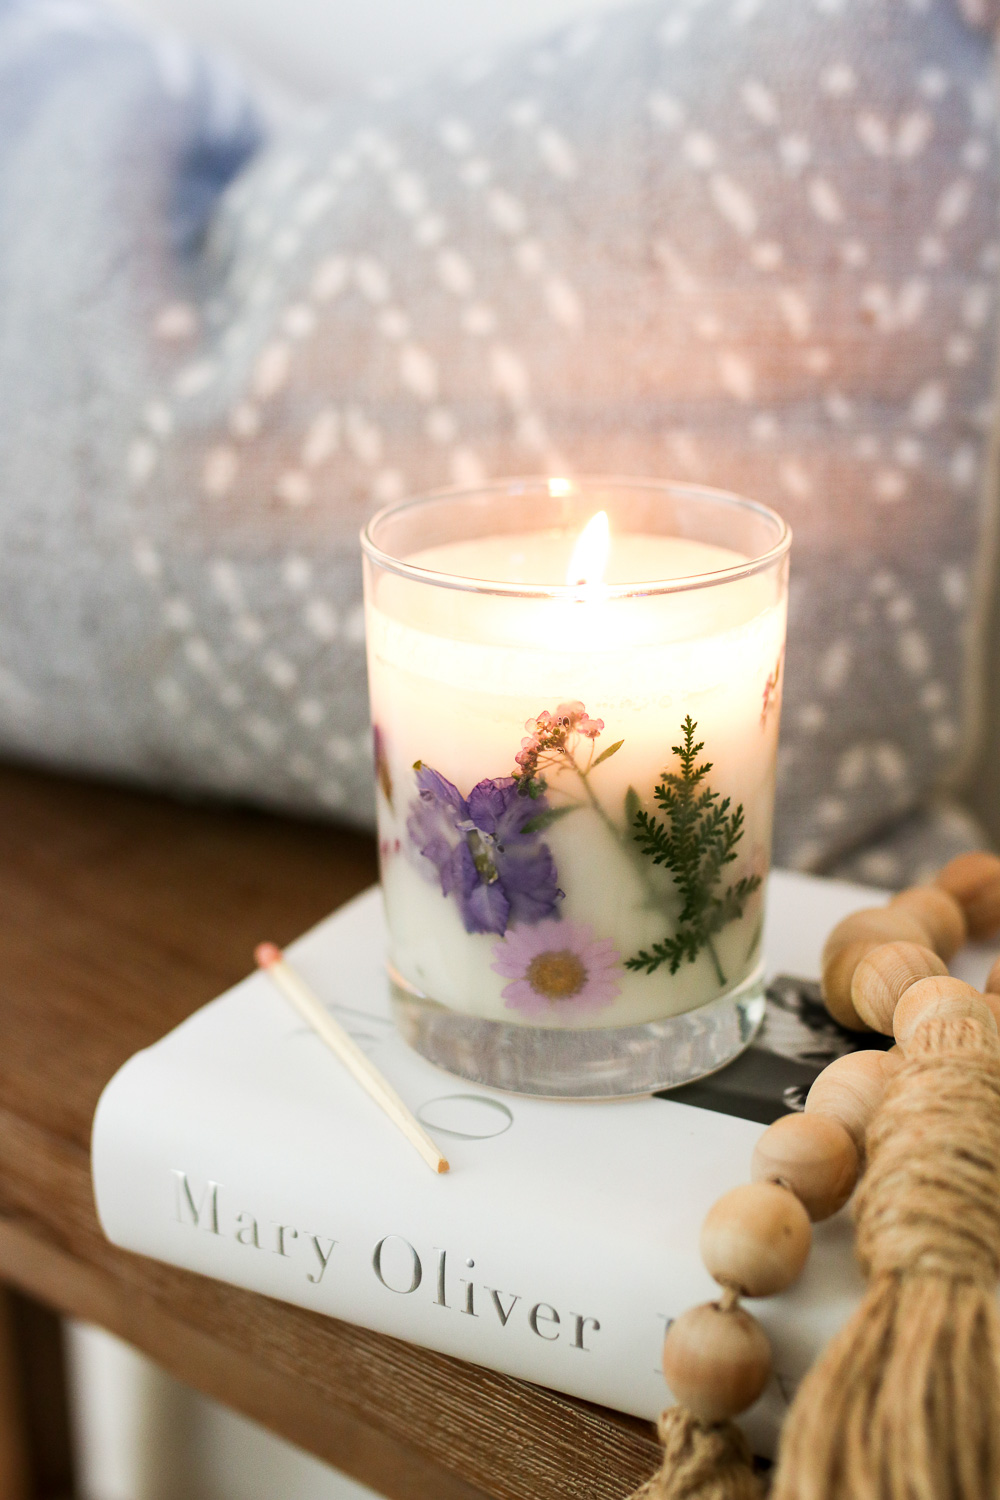 These gorgeous and gift-able dried flower candles bring a little of the outdoors in and will help tide you over during the cooler months ahead.